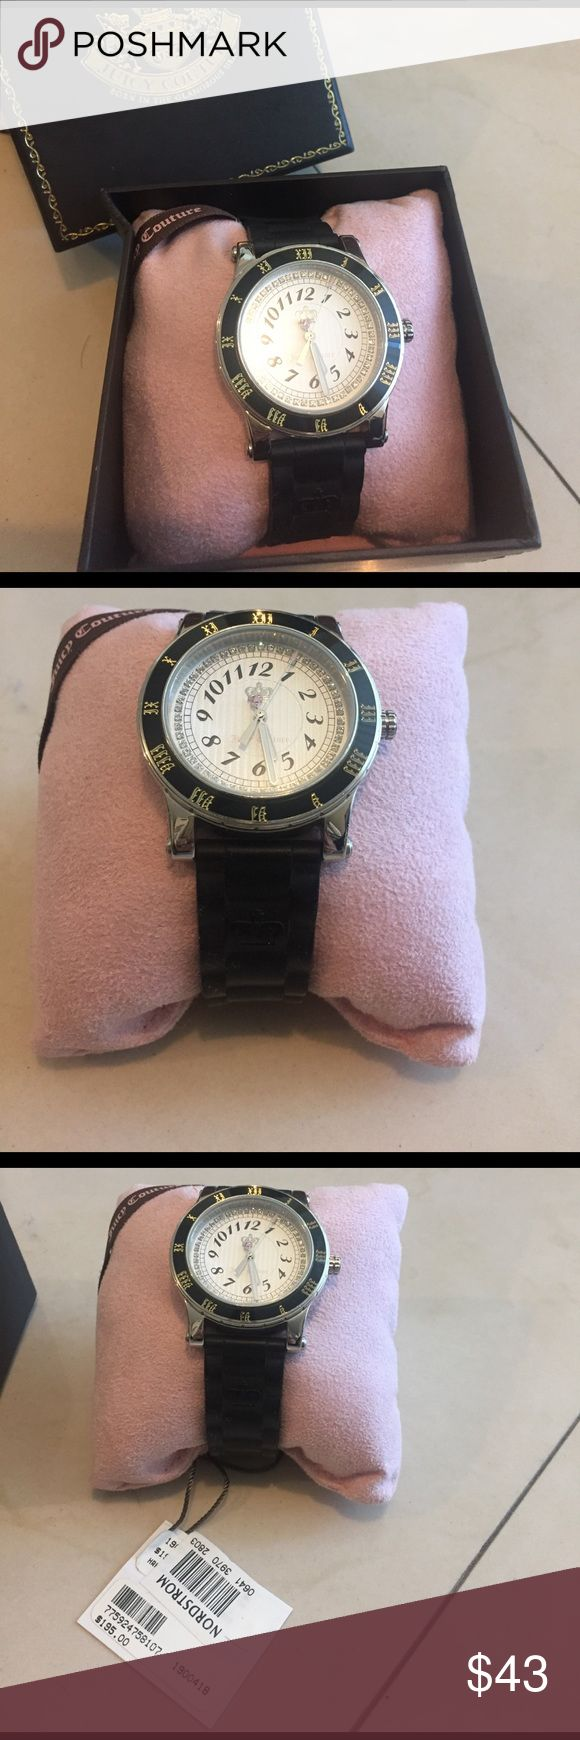 Juicy Couture watch Juicy Couture watch with black rubber band. Silver jewels on the face of the watch. Battery replacement required. Juicy Couture Accessories Watches